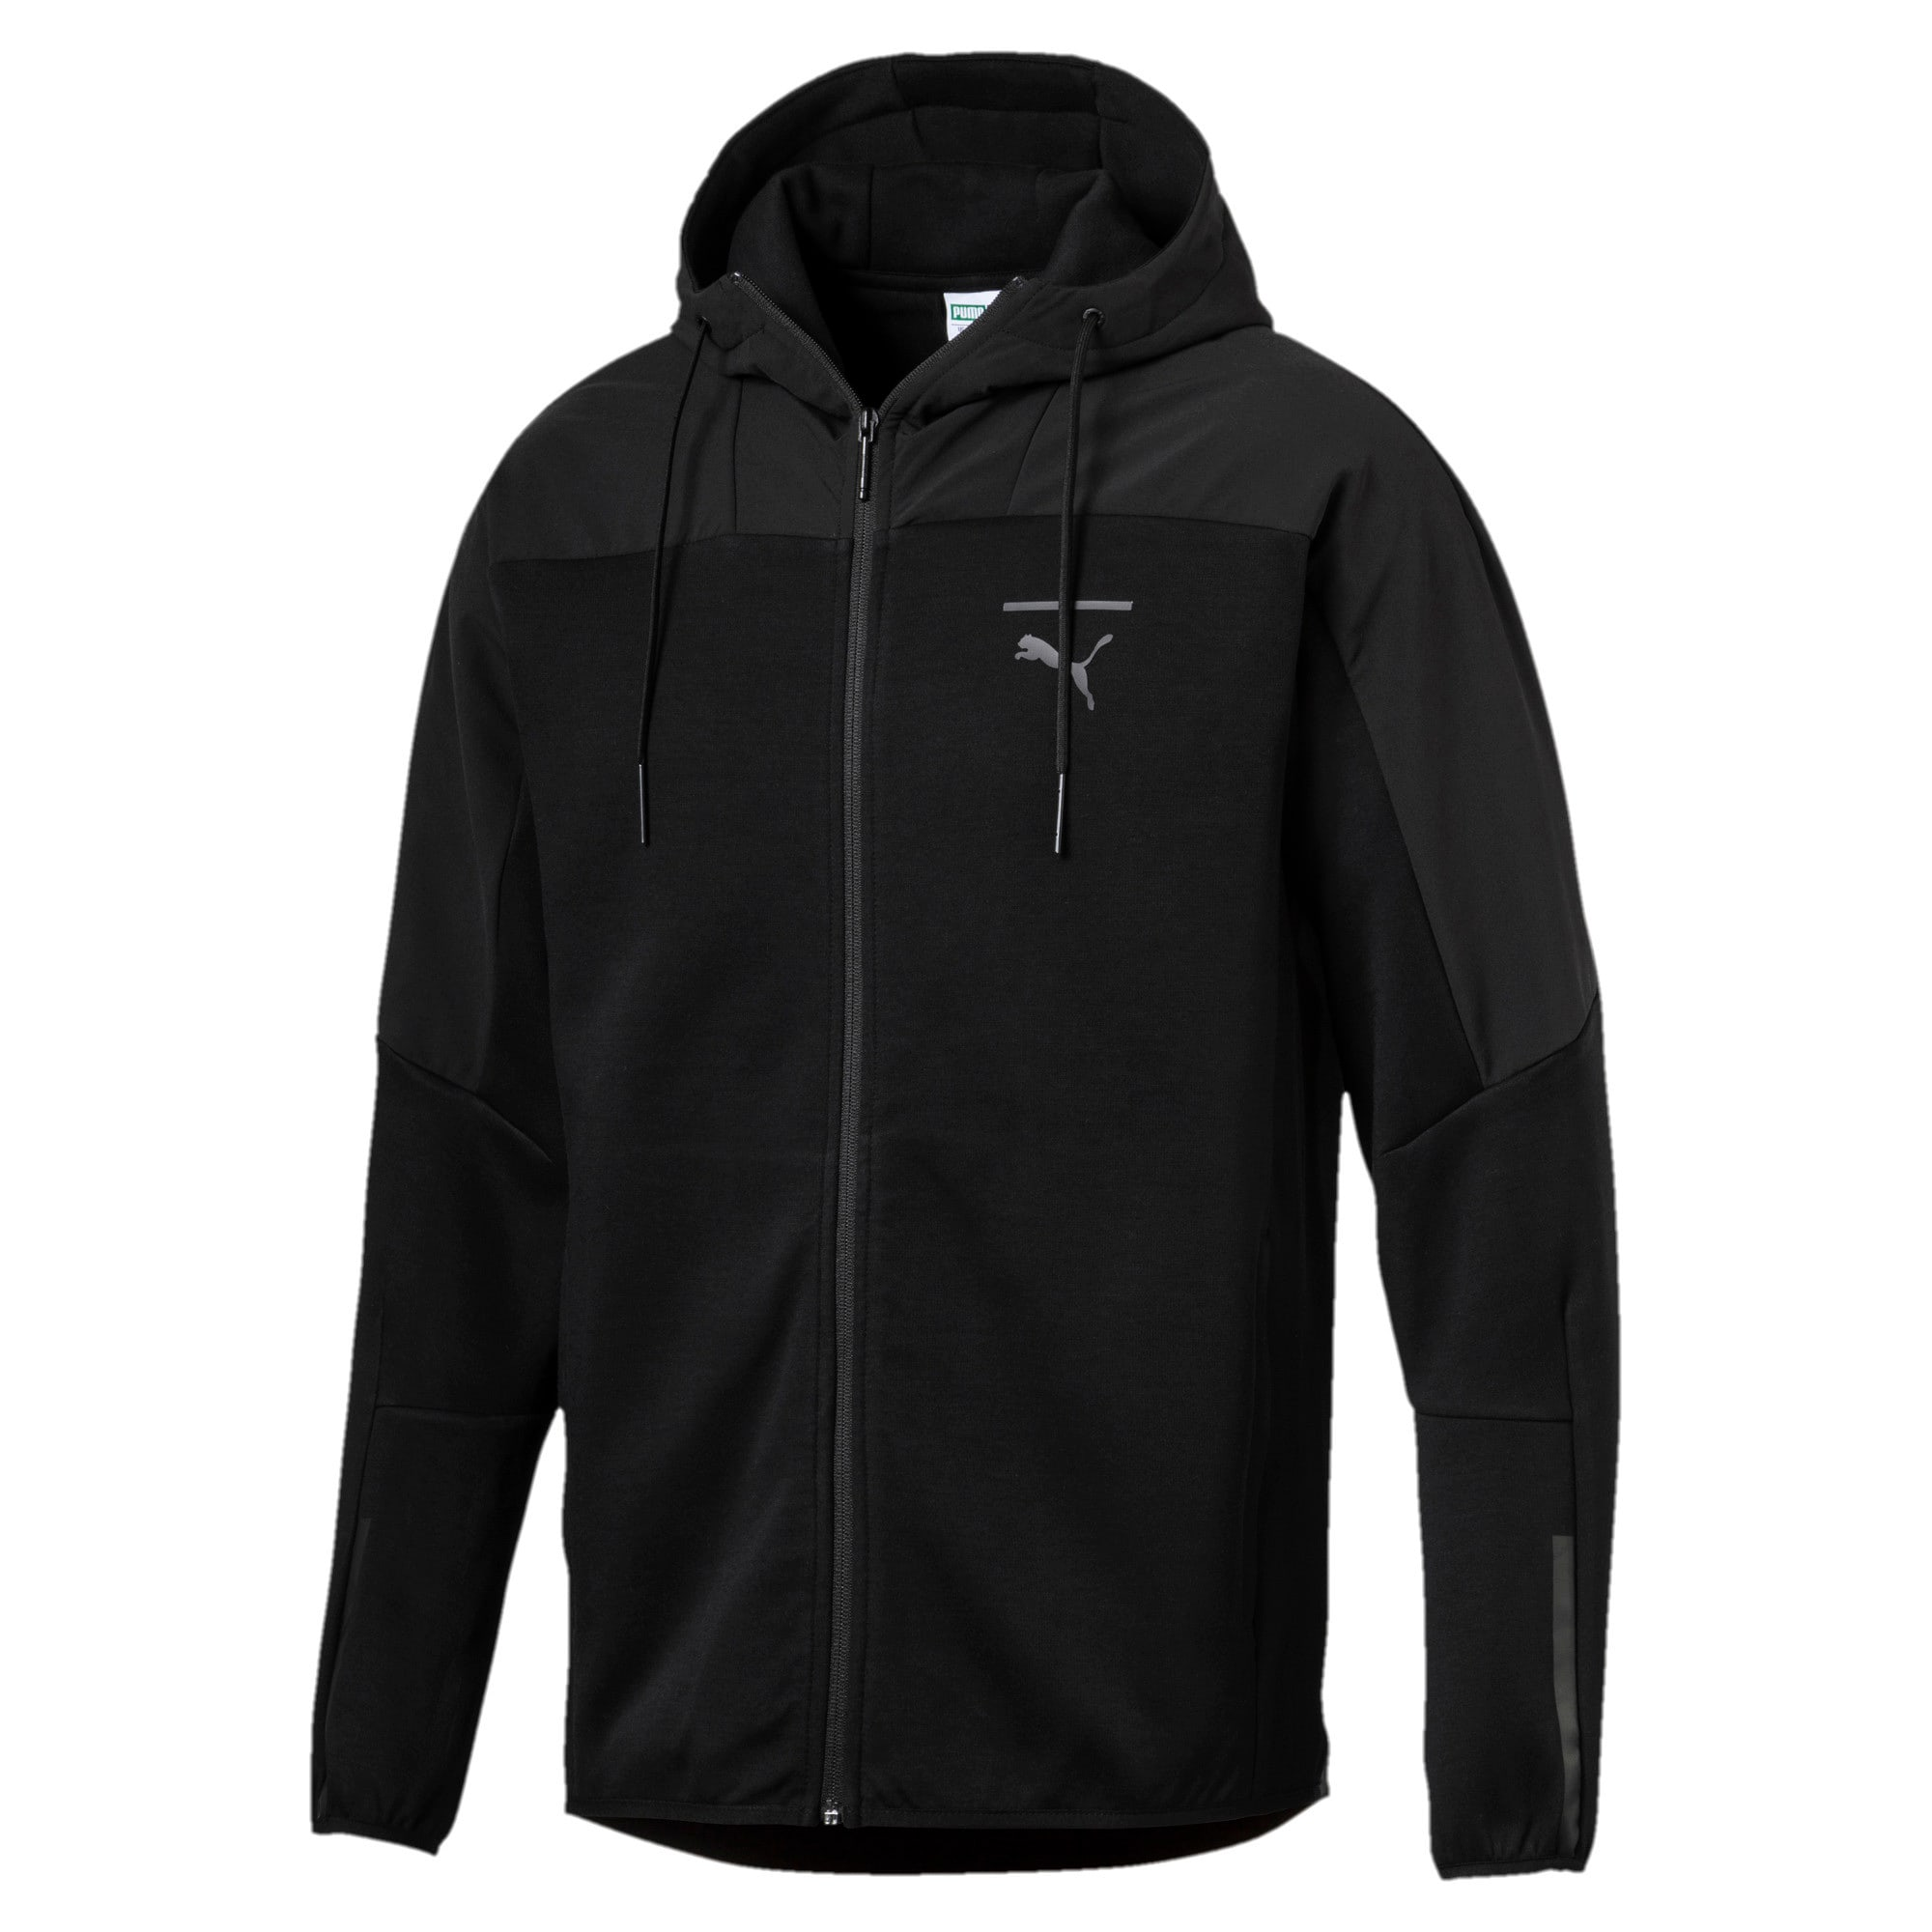 Pace LAB Men's Full Zip Hoodie, Puma Black, large